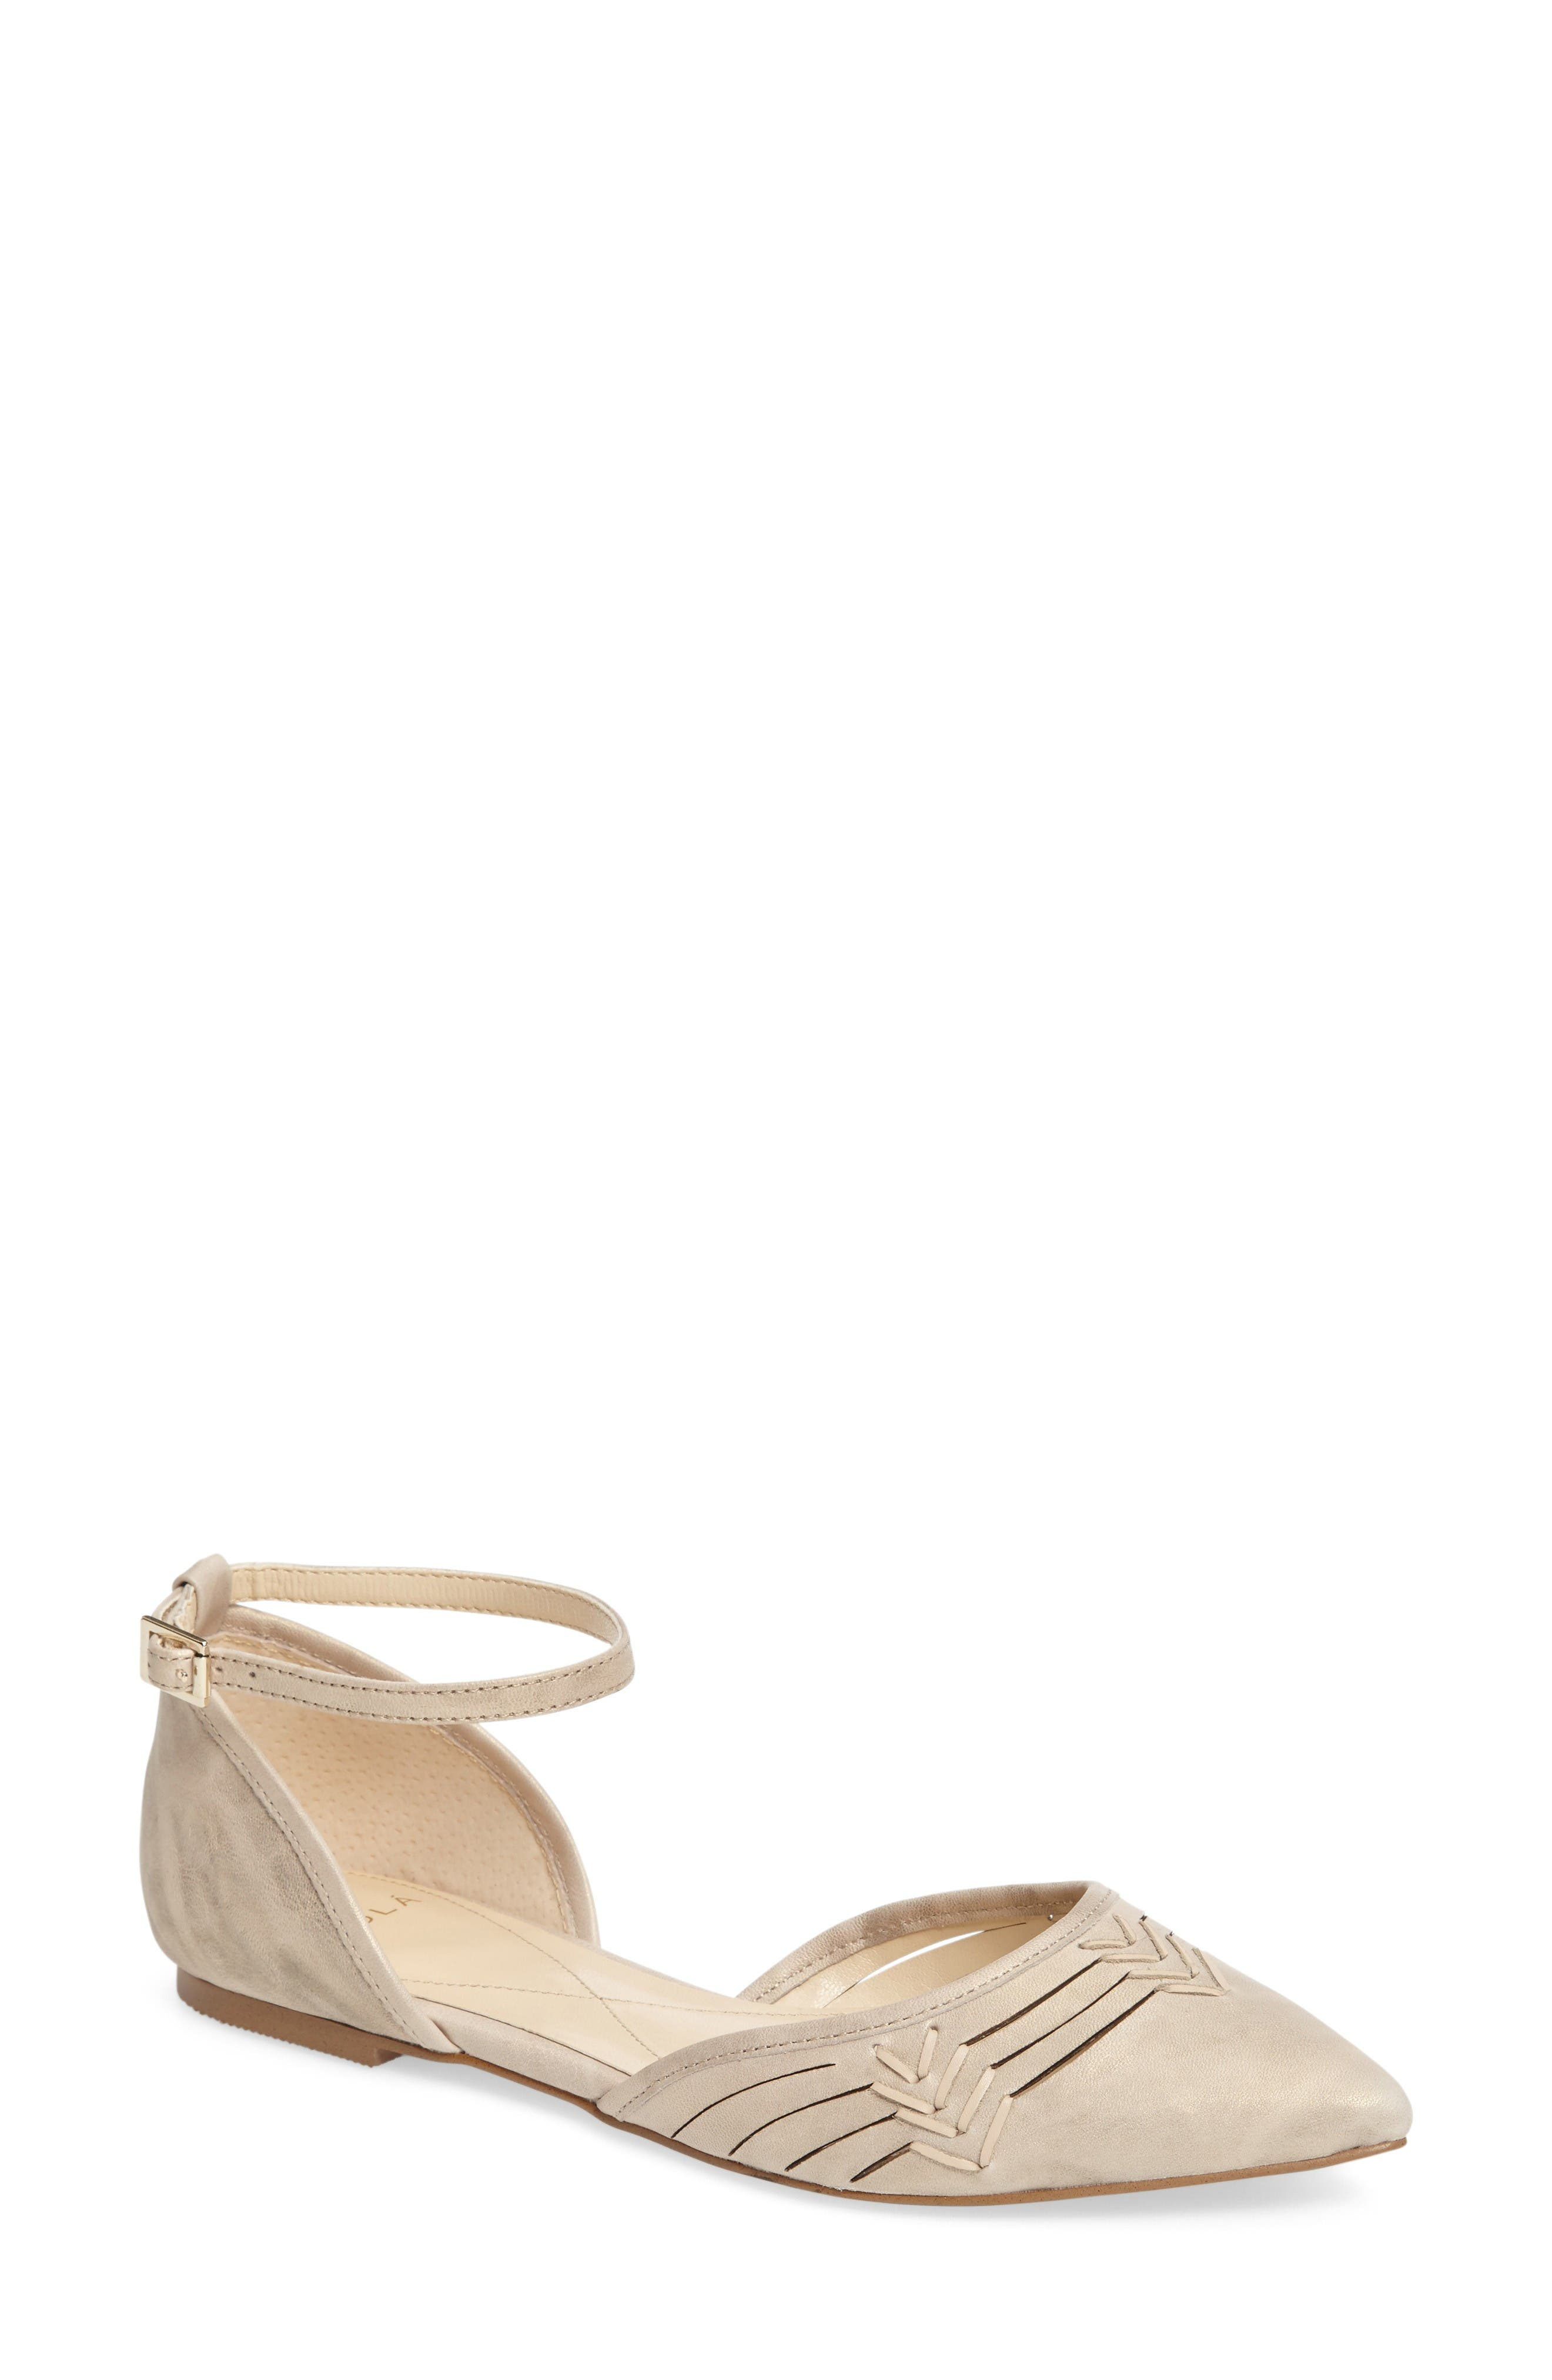 Main Image - Isolá Cellino Ankle Strap Flat (Women)